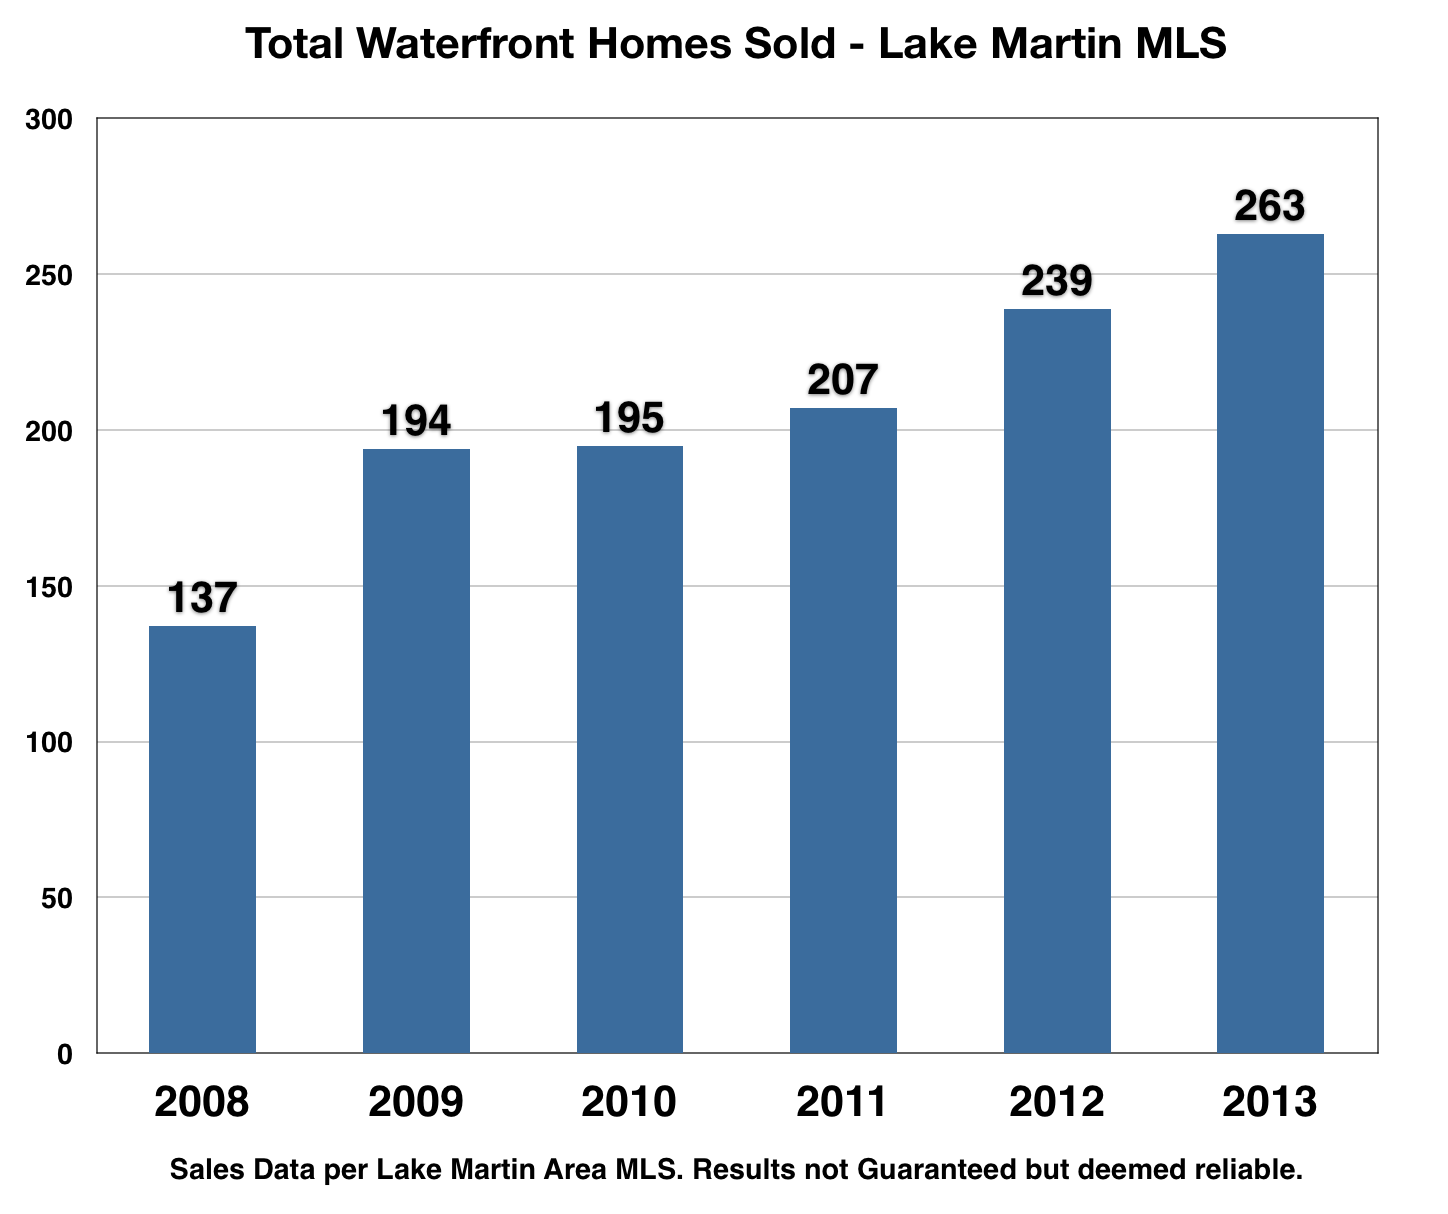 Lake Martin Home sales 2013 versus prior years